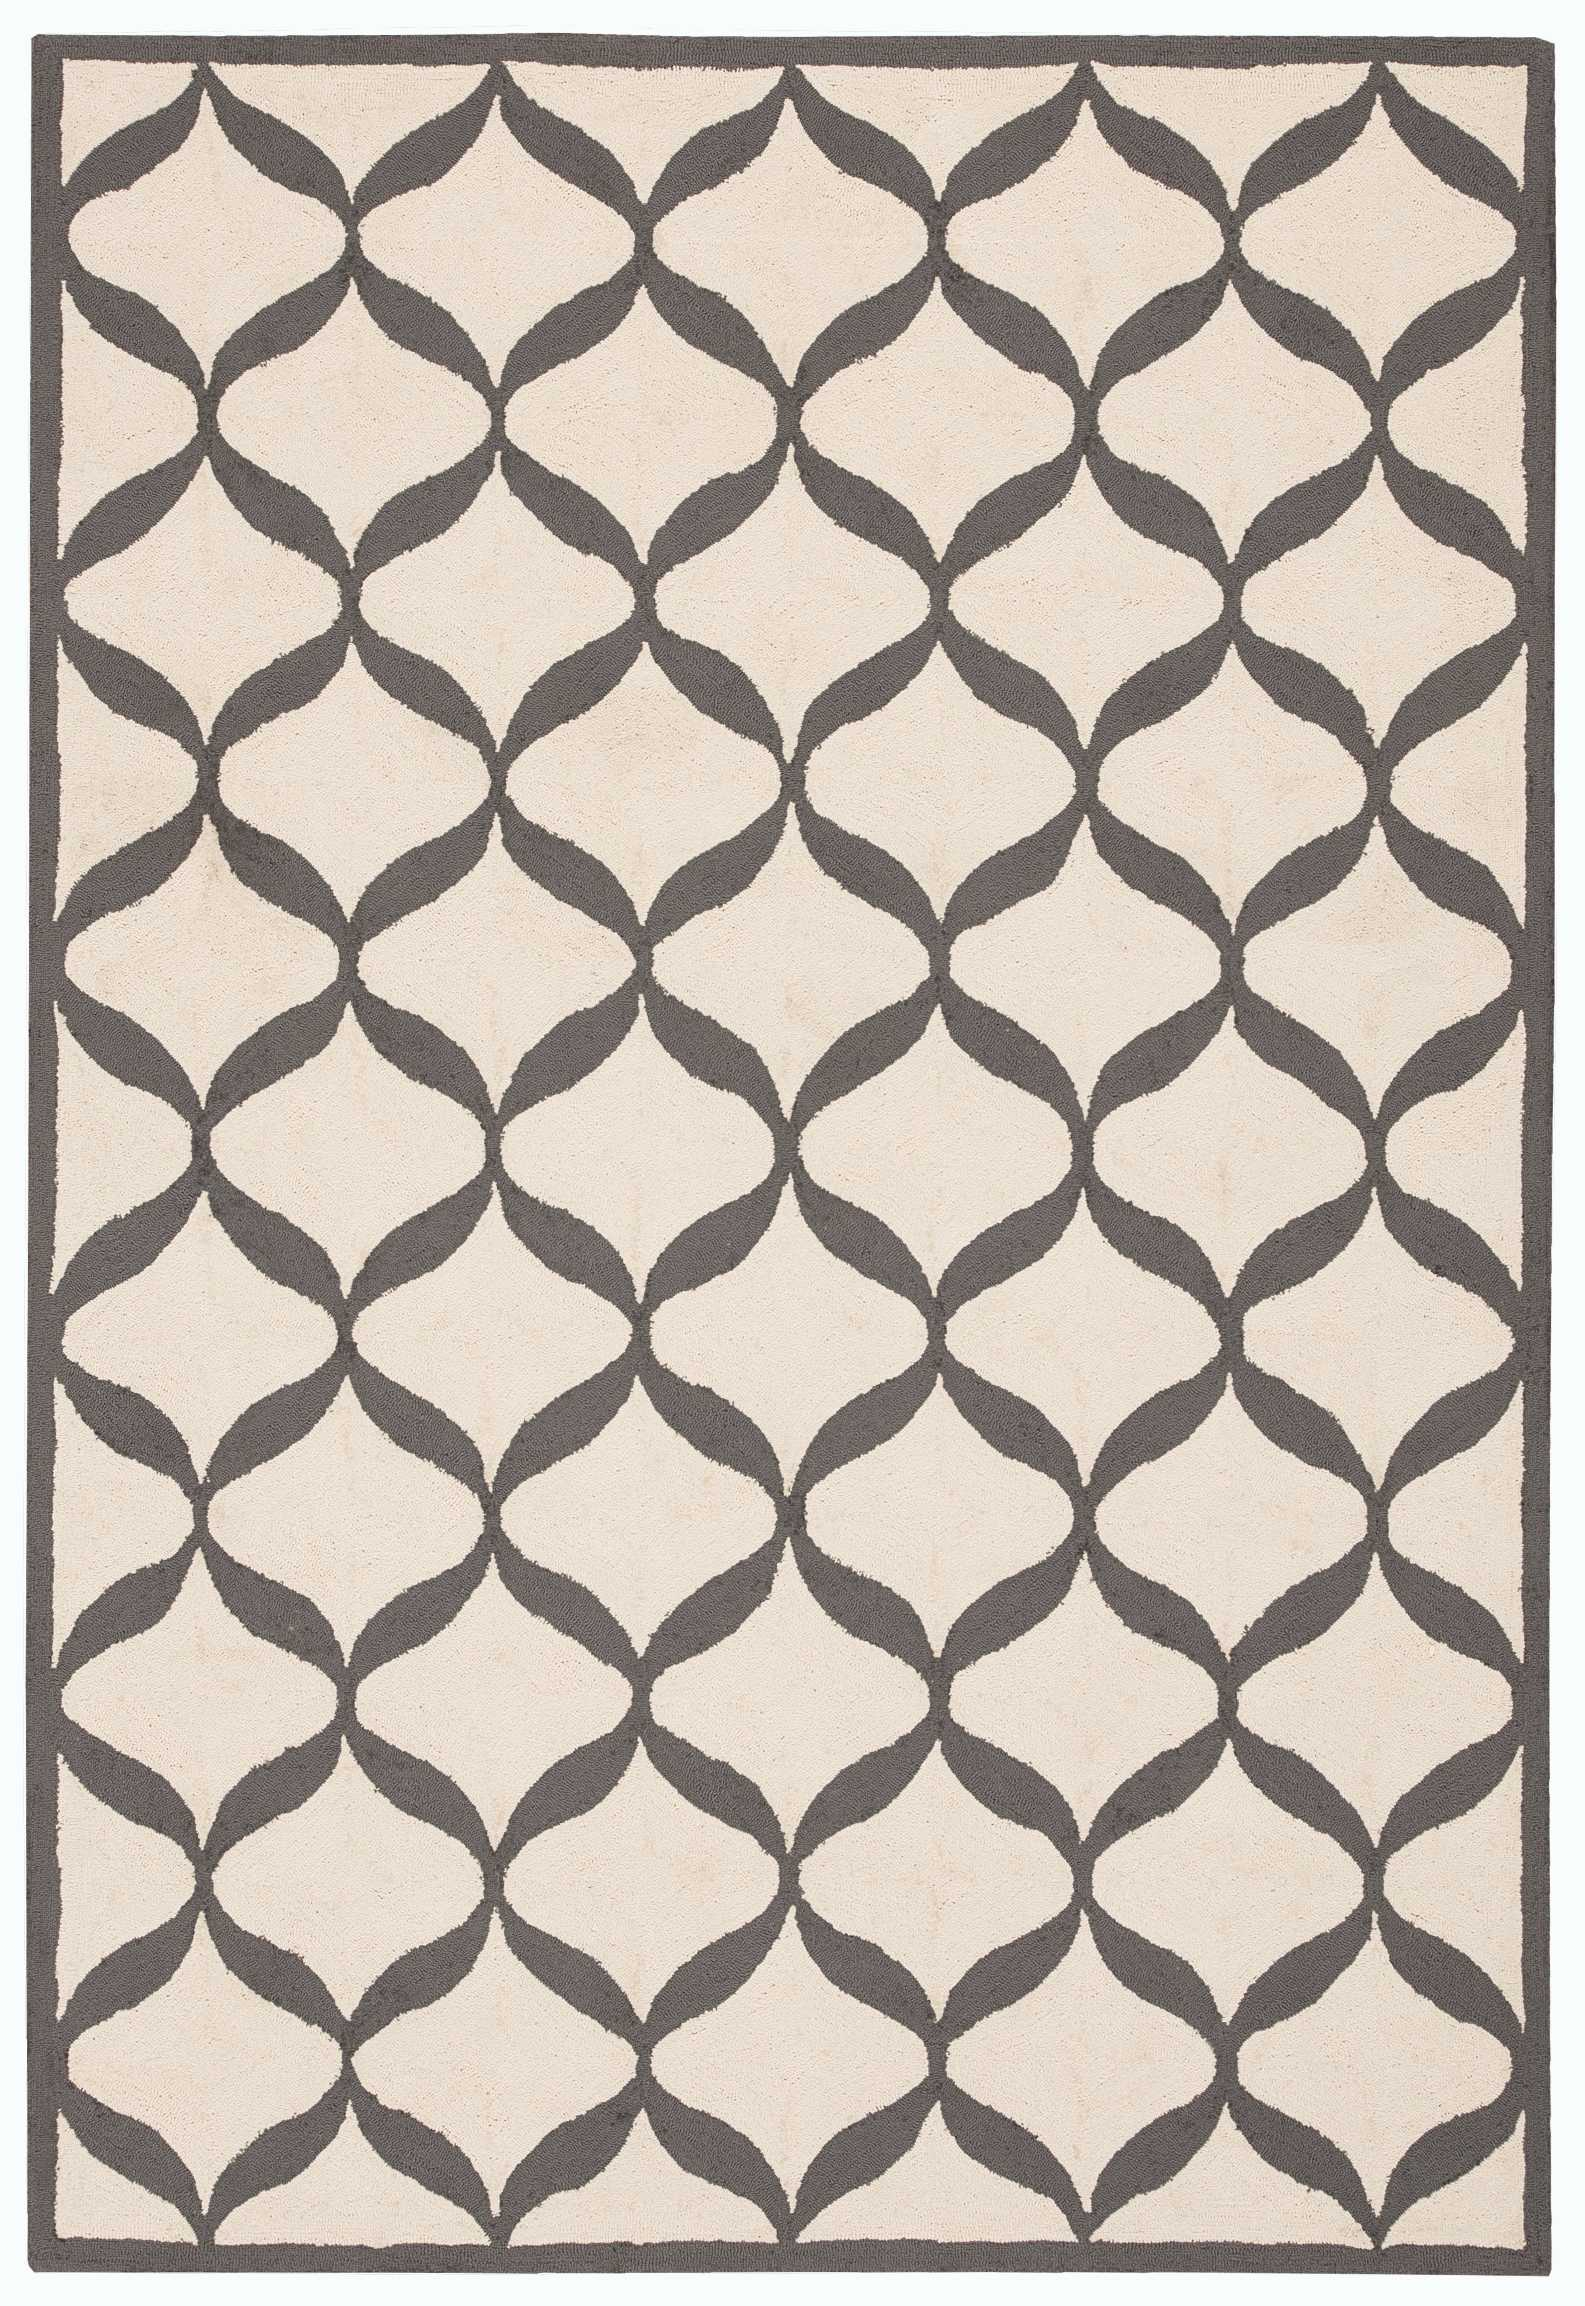 Nourison Decor Der06 Grey 5'X7'  Area Rug